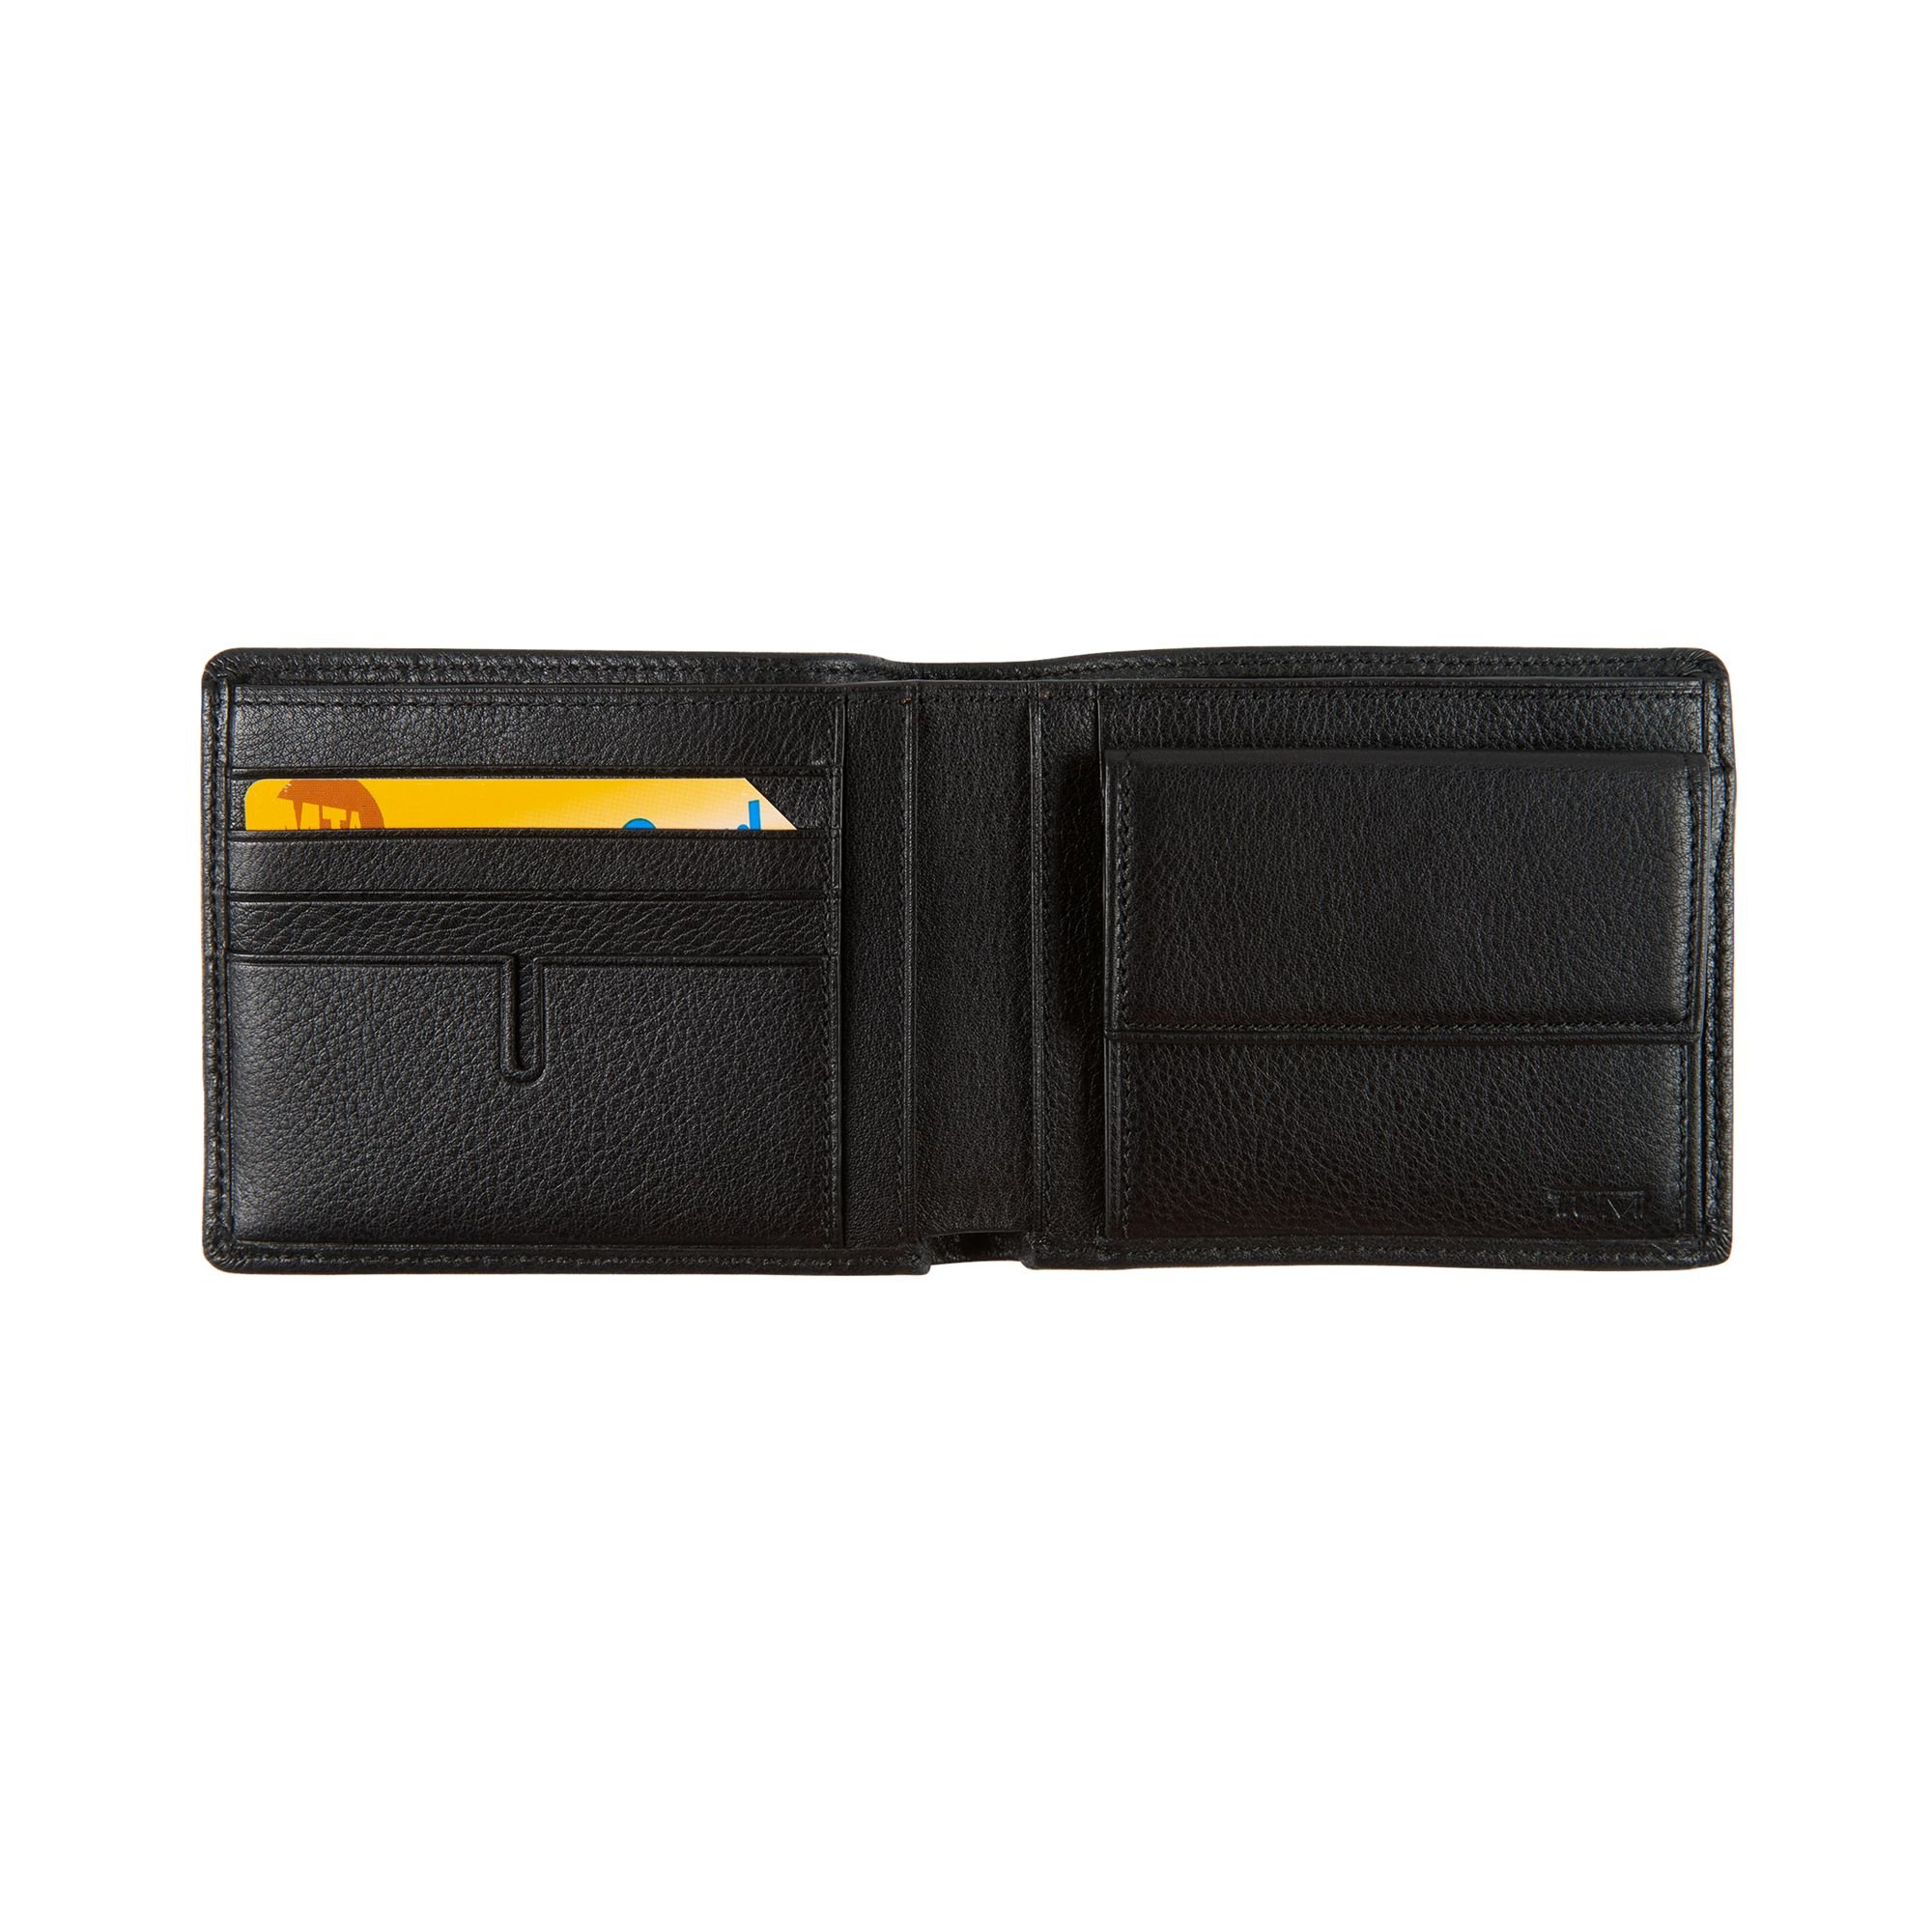 Tumi Mens Nassau Global Wallet with Coin Pocket Black Textured One Size by Tumi (Image #2)